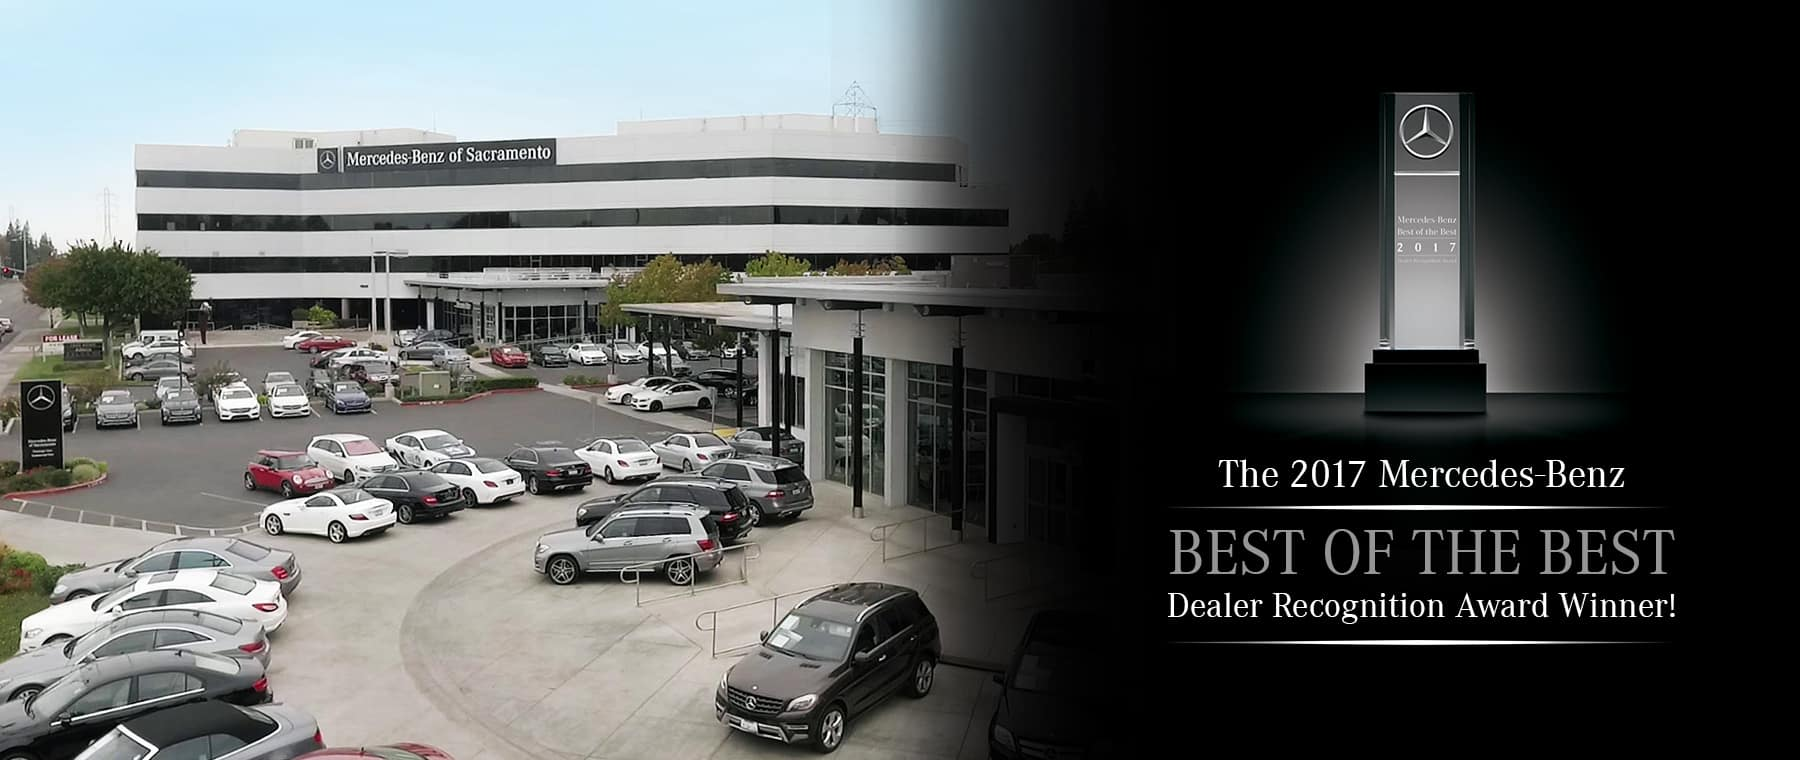 Mercedes benz of sacramento new and pre owned luxury car for Dealer mercedes benz